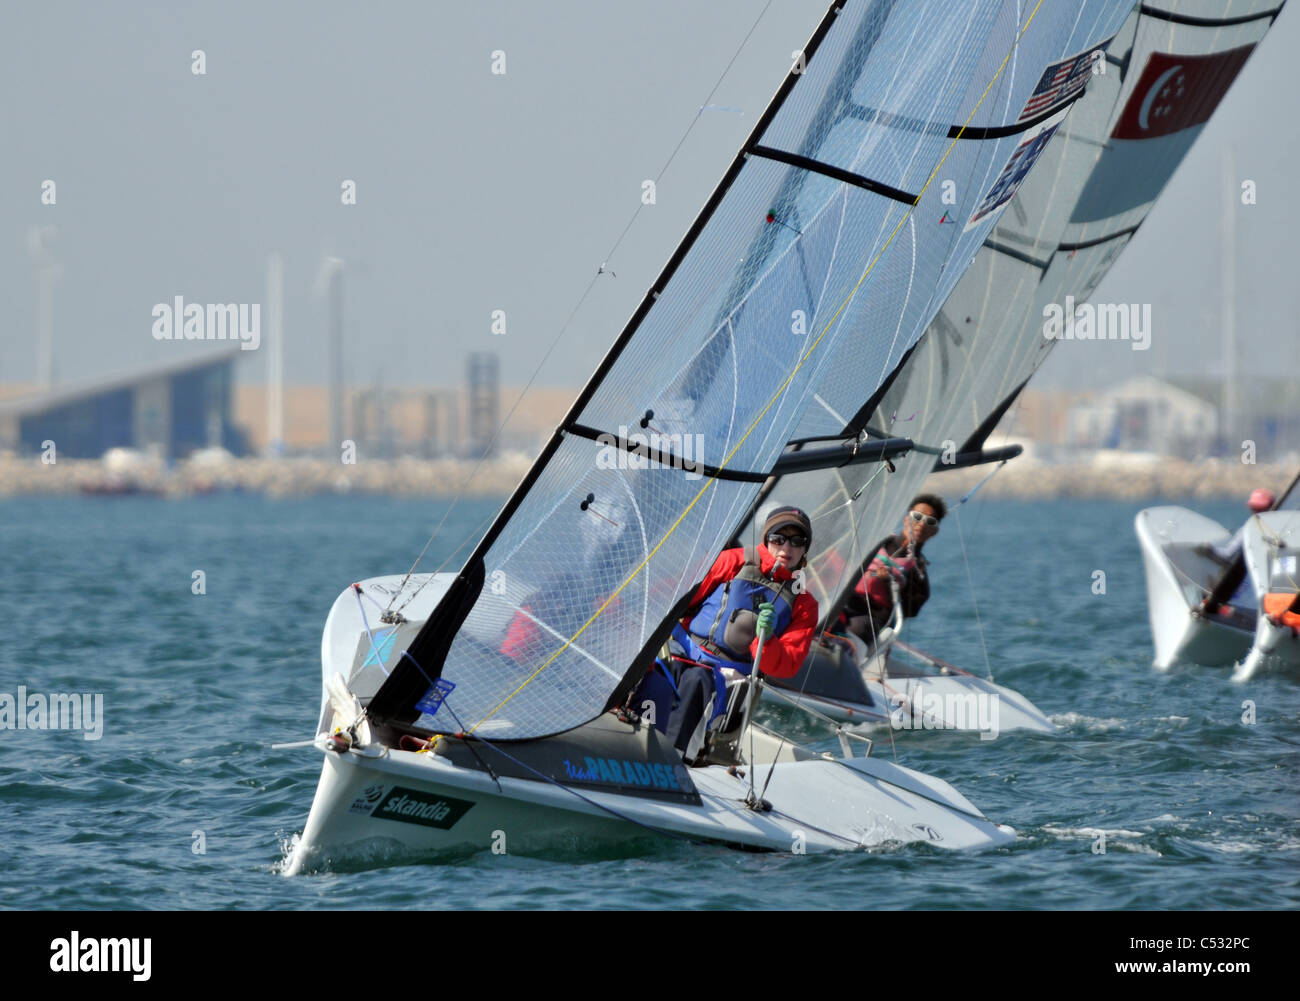 UK, Dorset, IFDS Disabled Sailing Combined World Championships 2011 - Stock Image